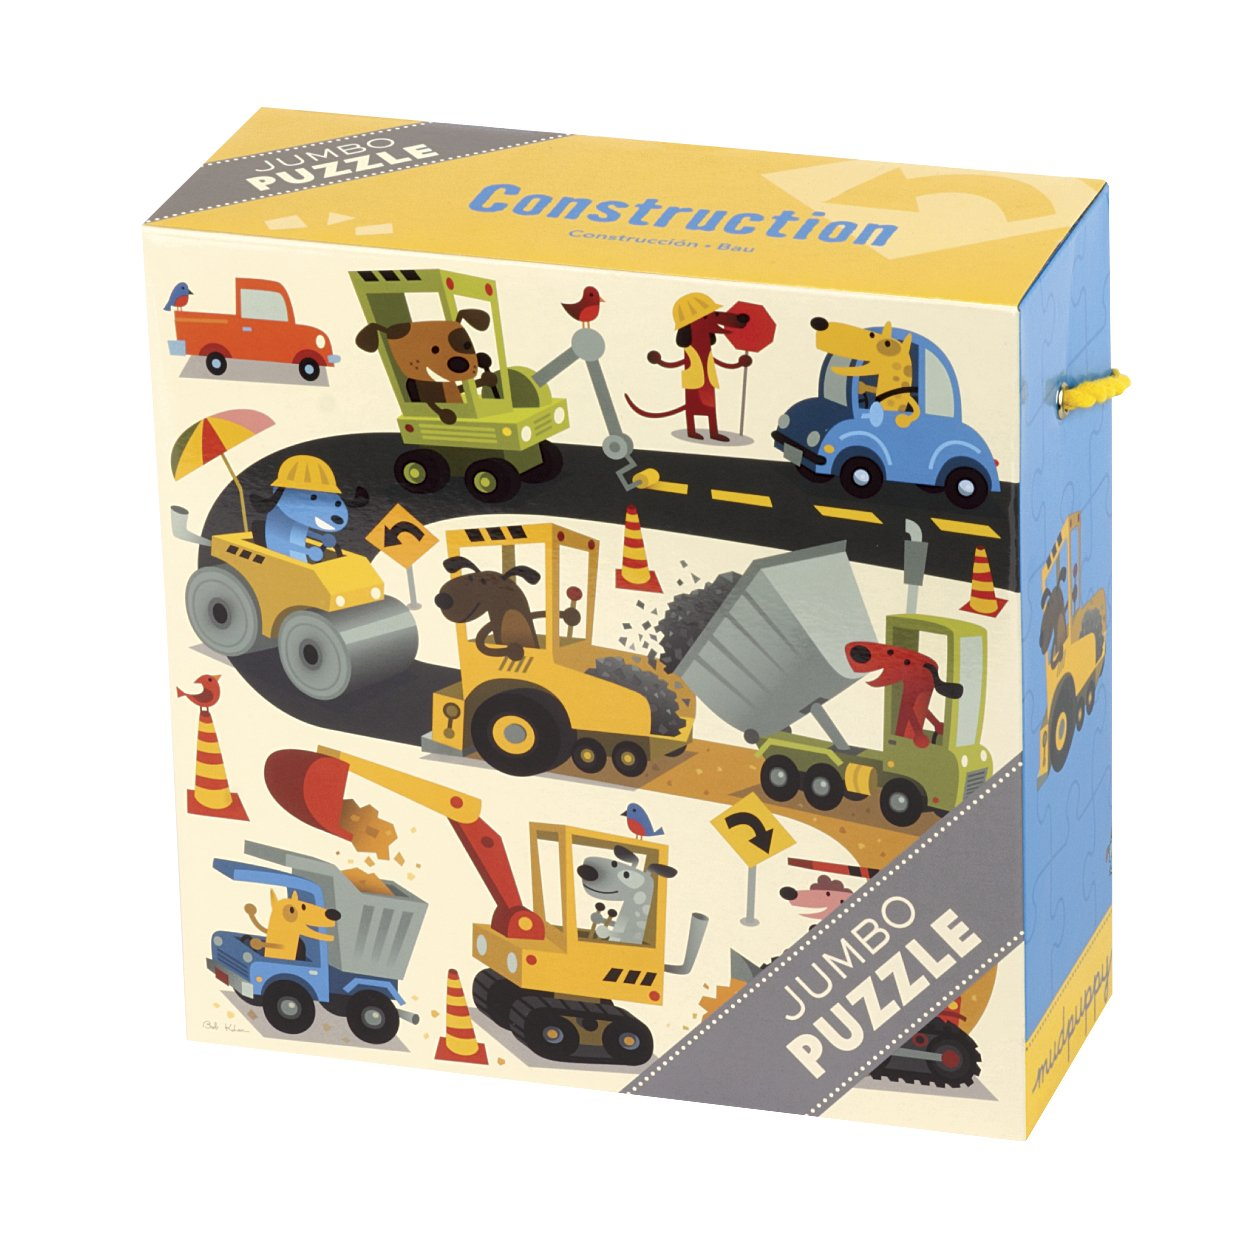 construction puzzle theme games puzzles together floor olds activities toys amazon mudpuppy gift pieces jumbo queen toddlers piece put